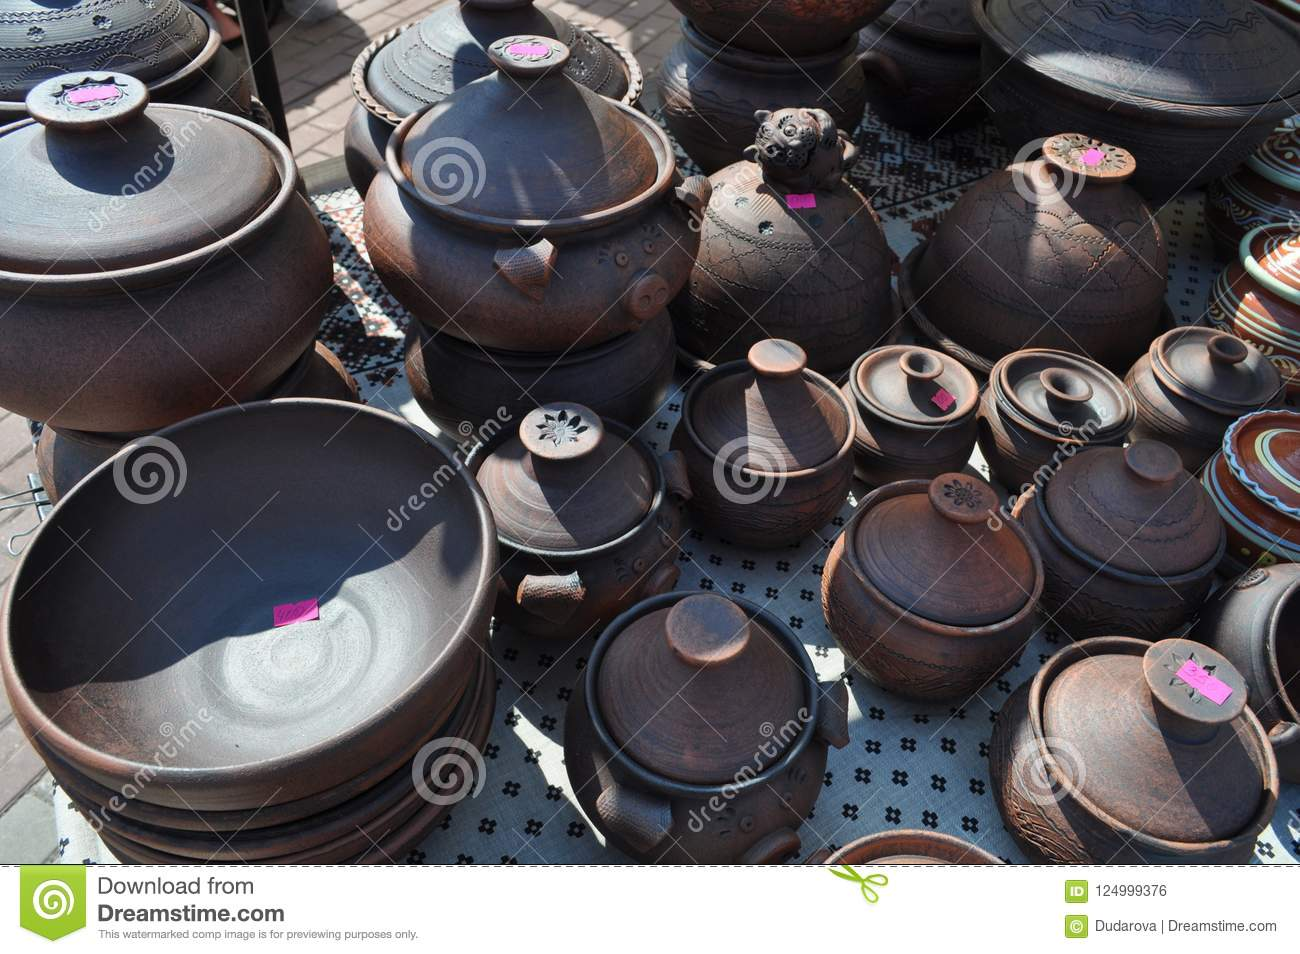 Exhibition of clay pots for sale